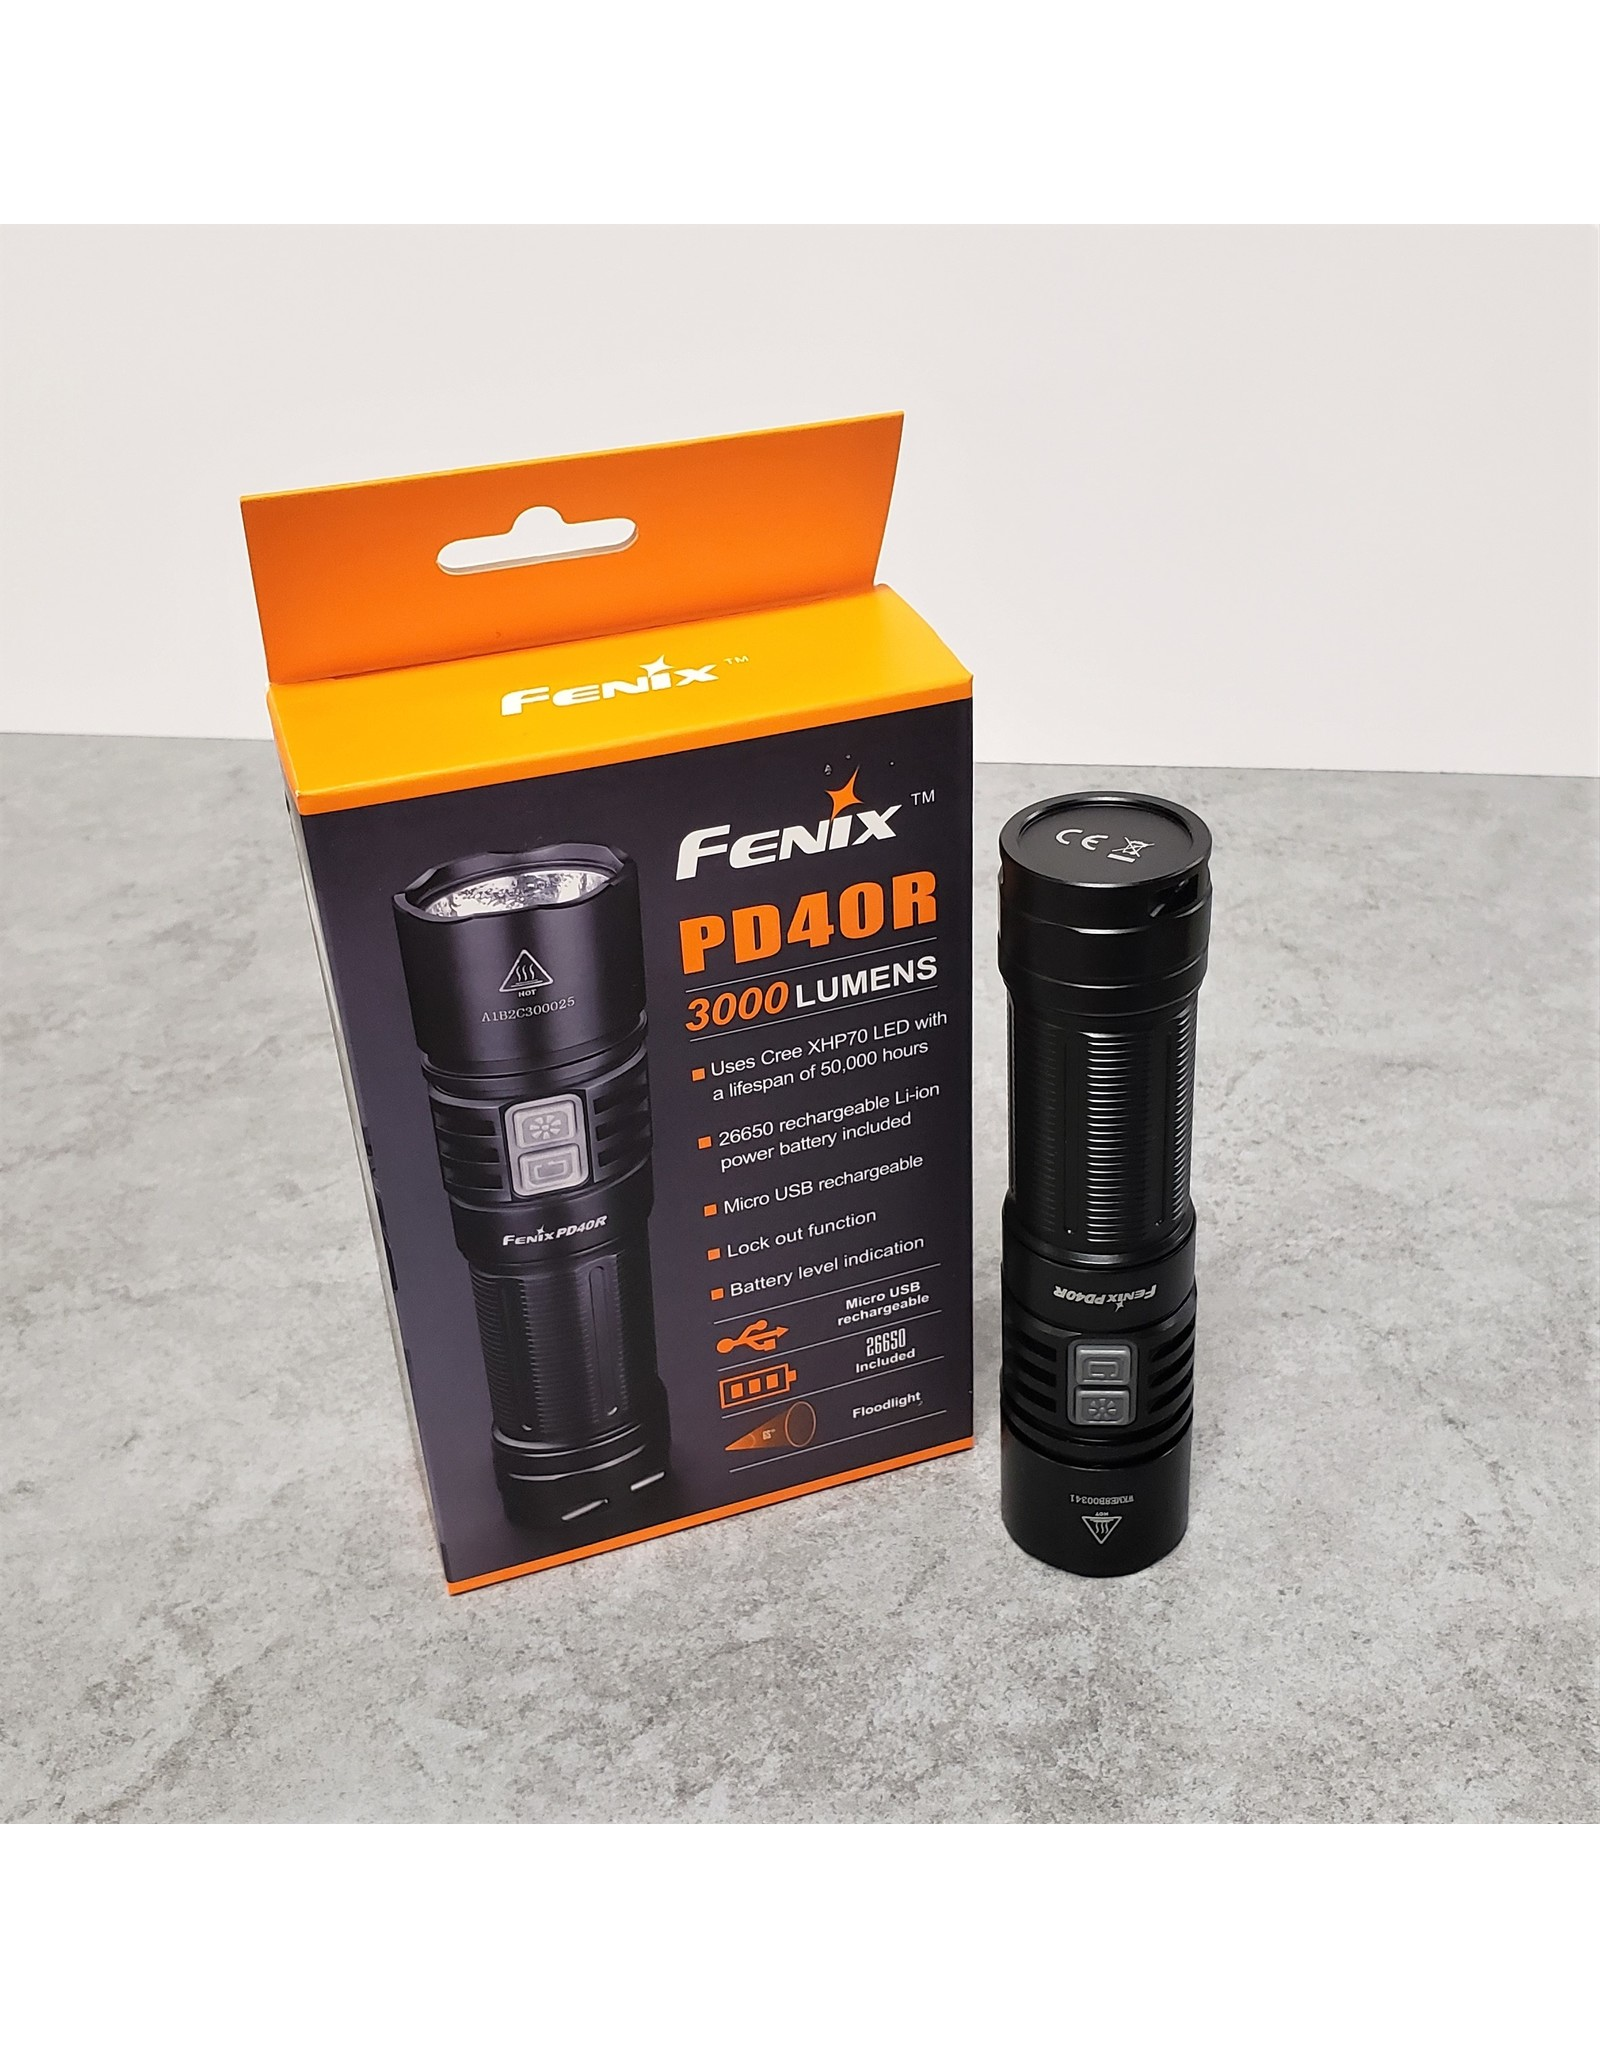 FENIX Fenix Lighting PD40R